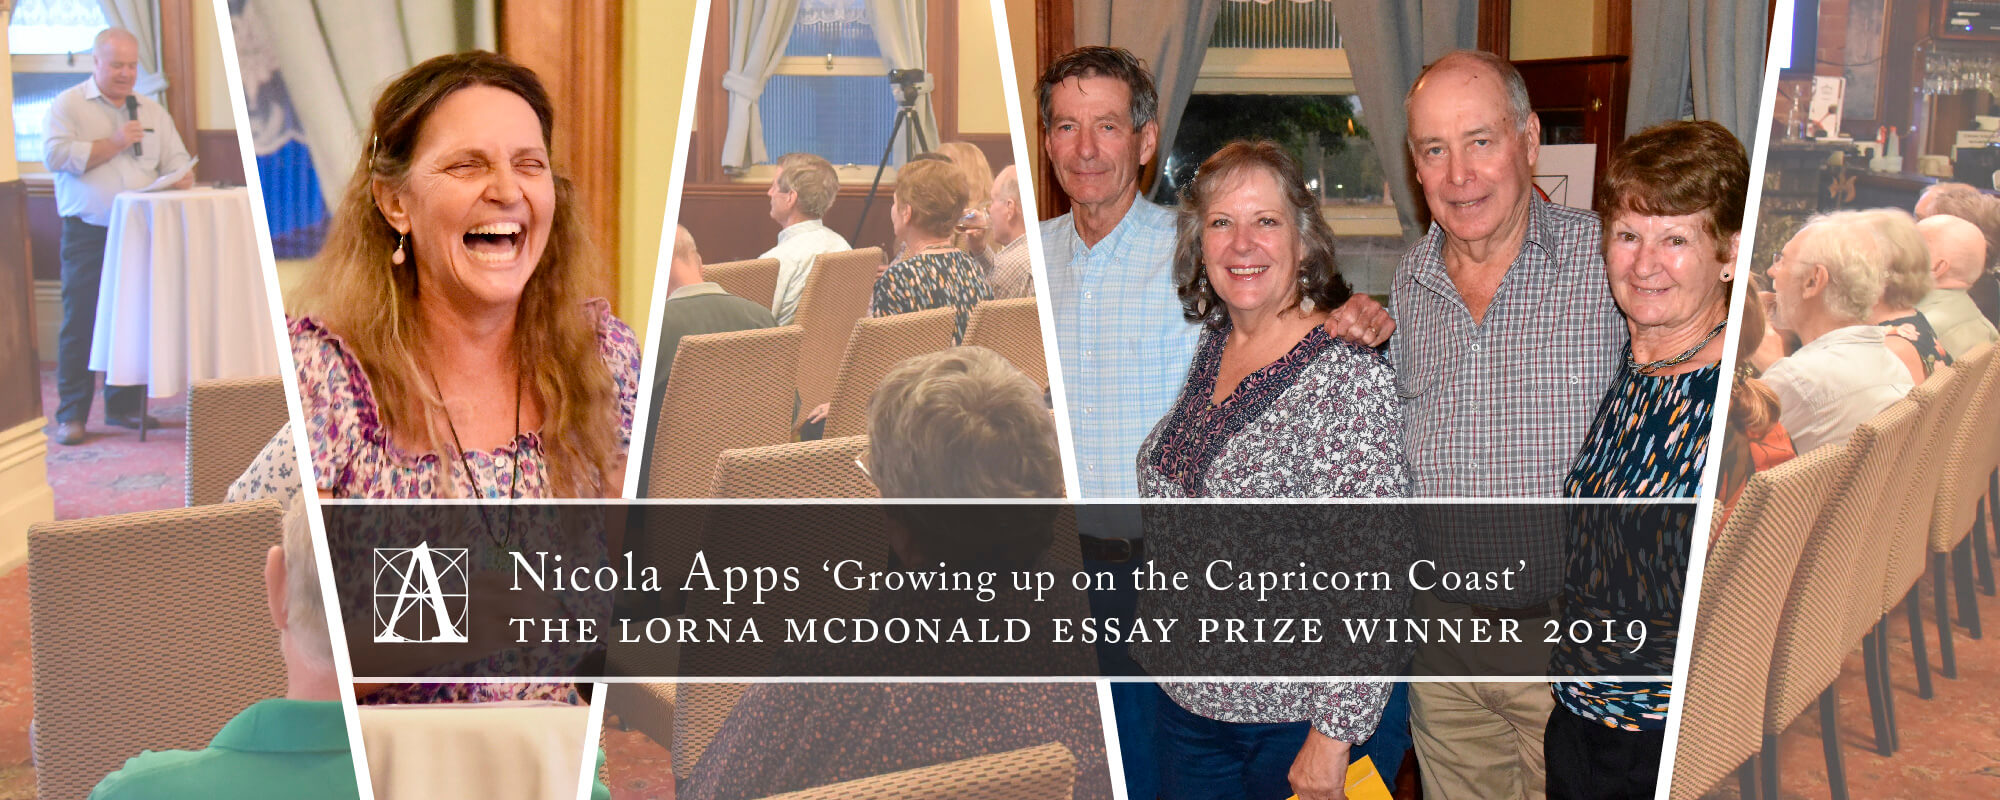 The Lorna McDonald Essay Prize 2019 Winner